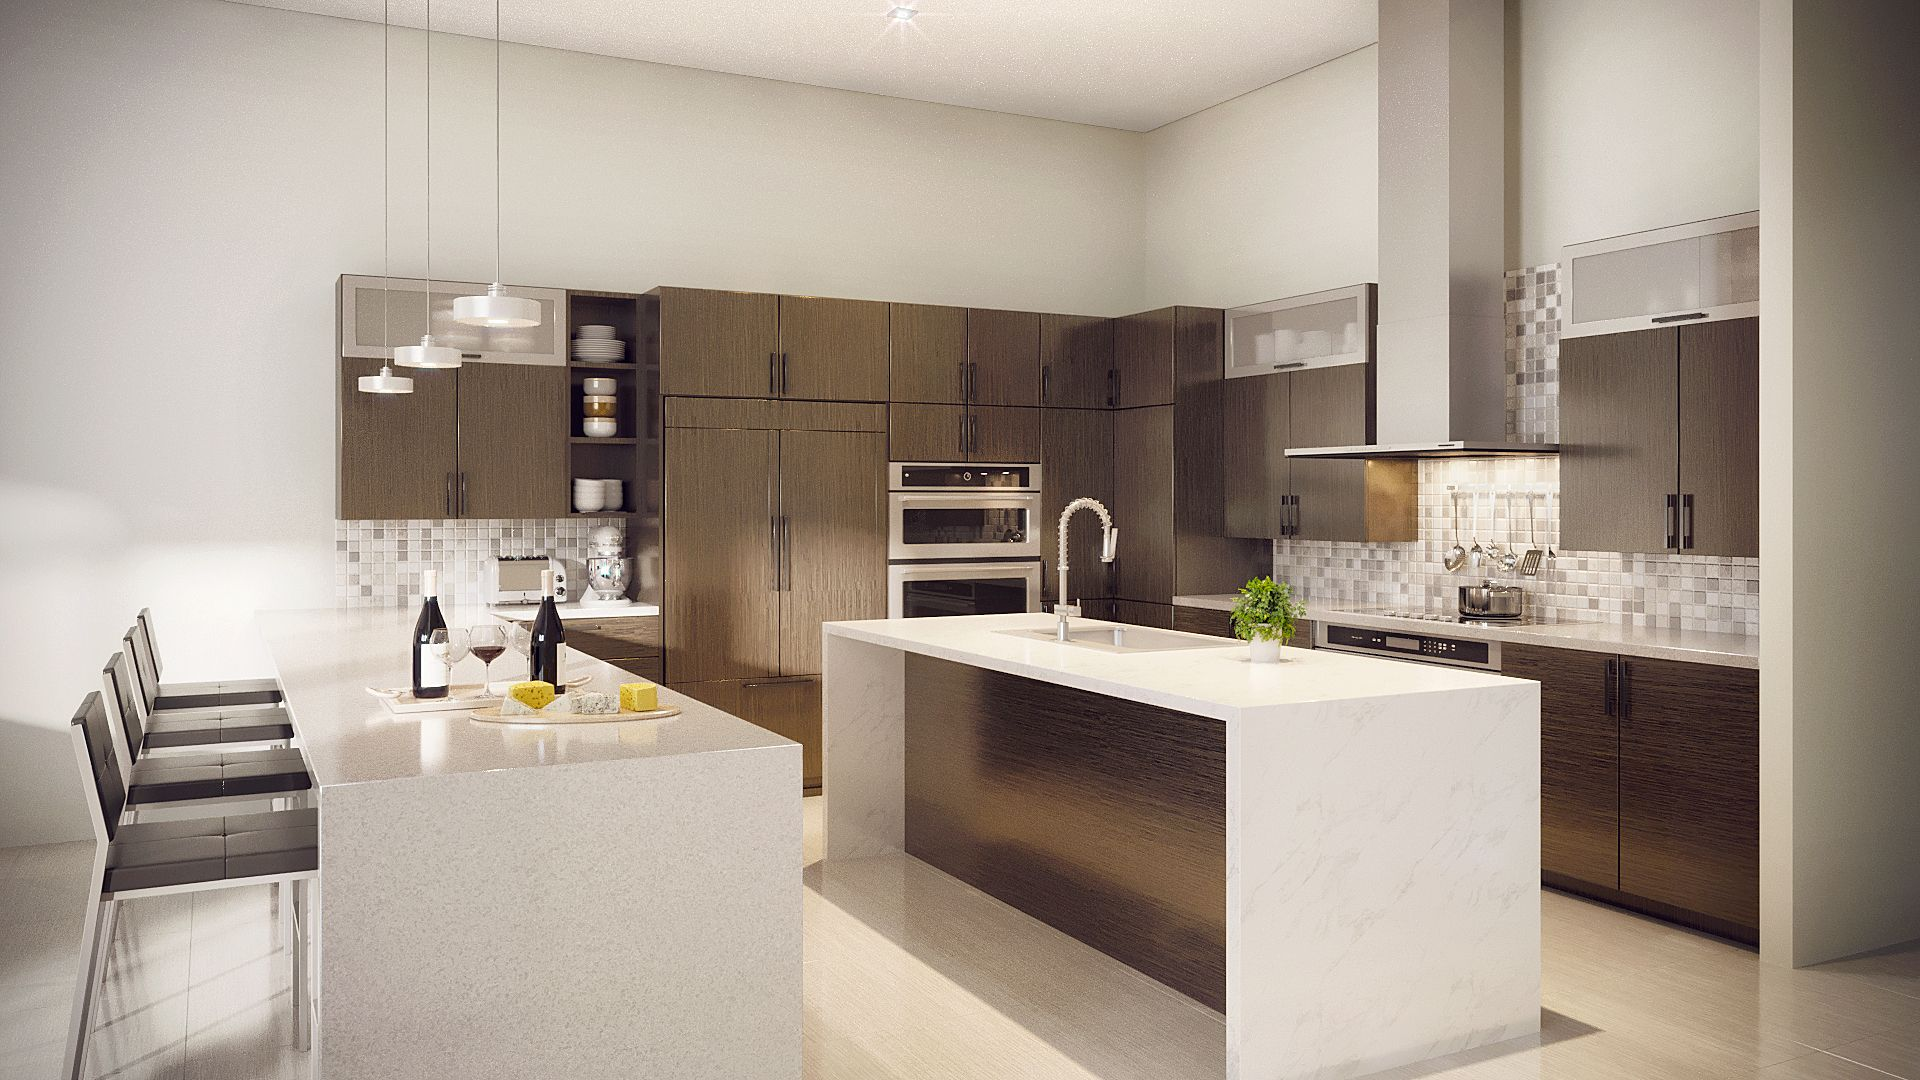 Kitchen featured in the Model C - Two Story By CC Homes in Miami-Dade County, FL